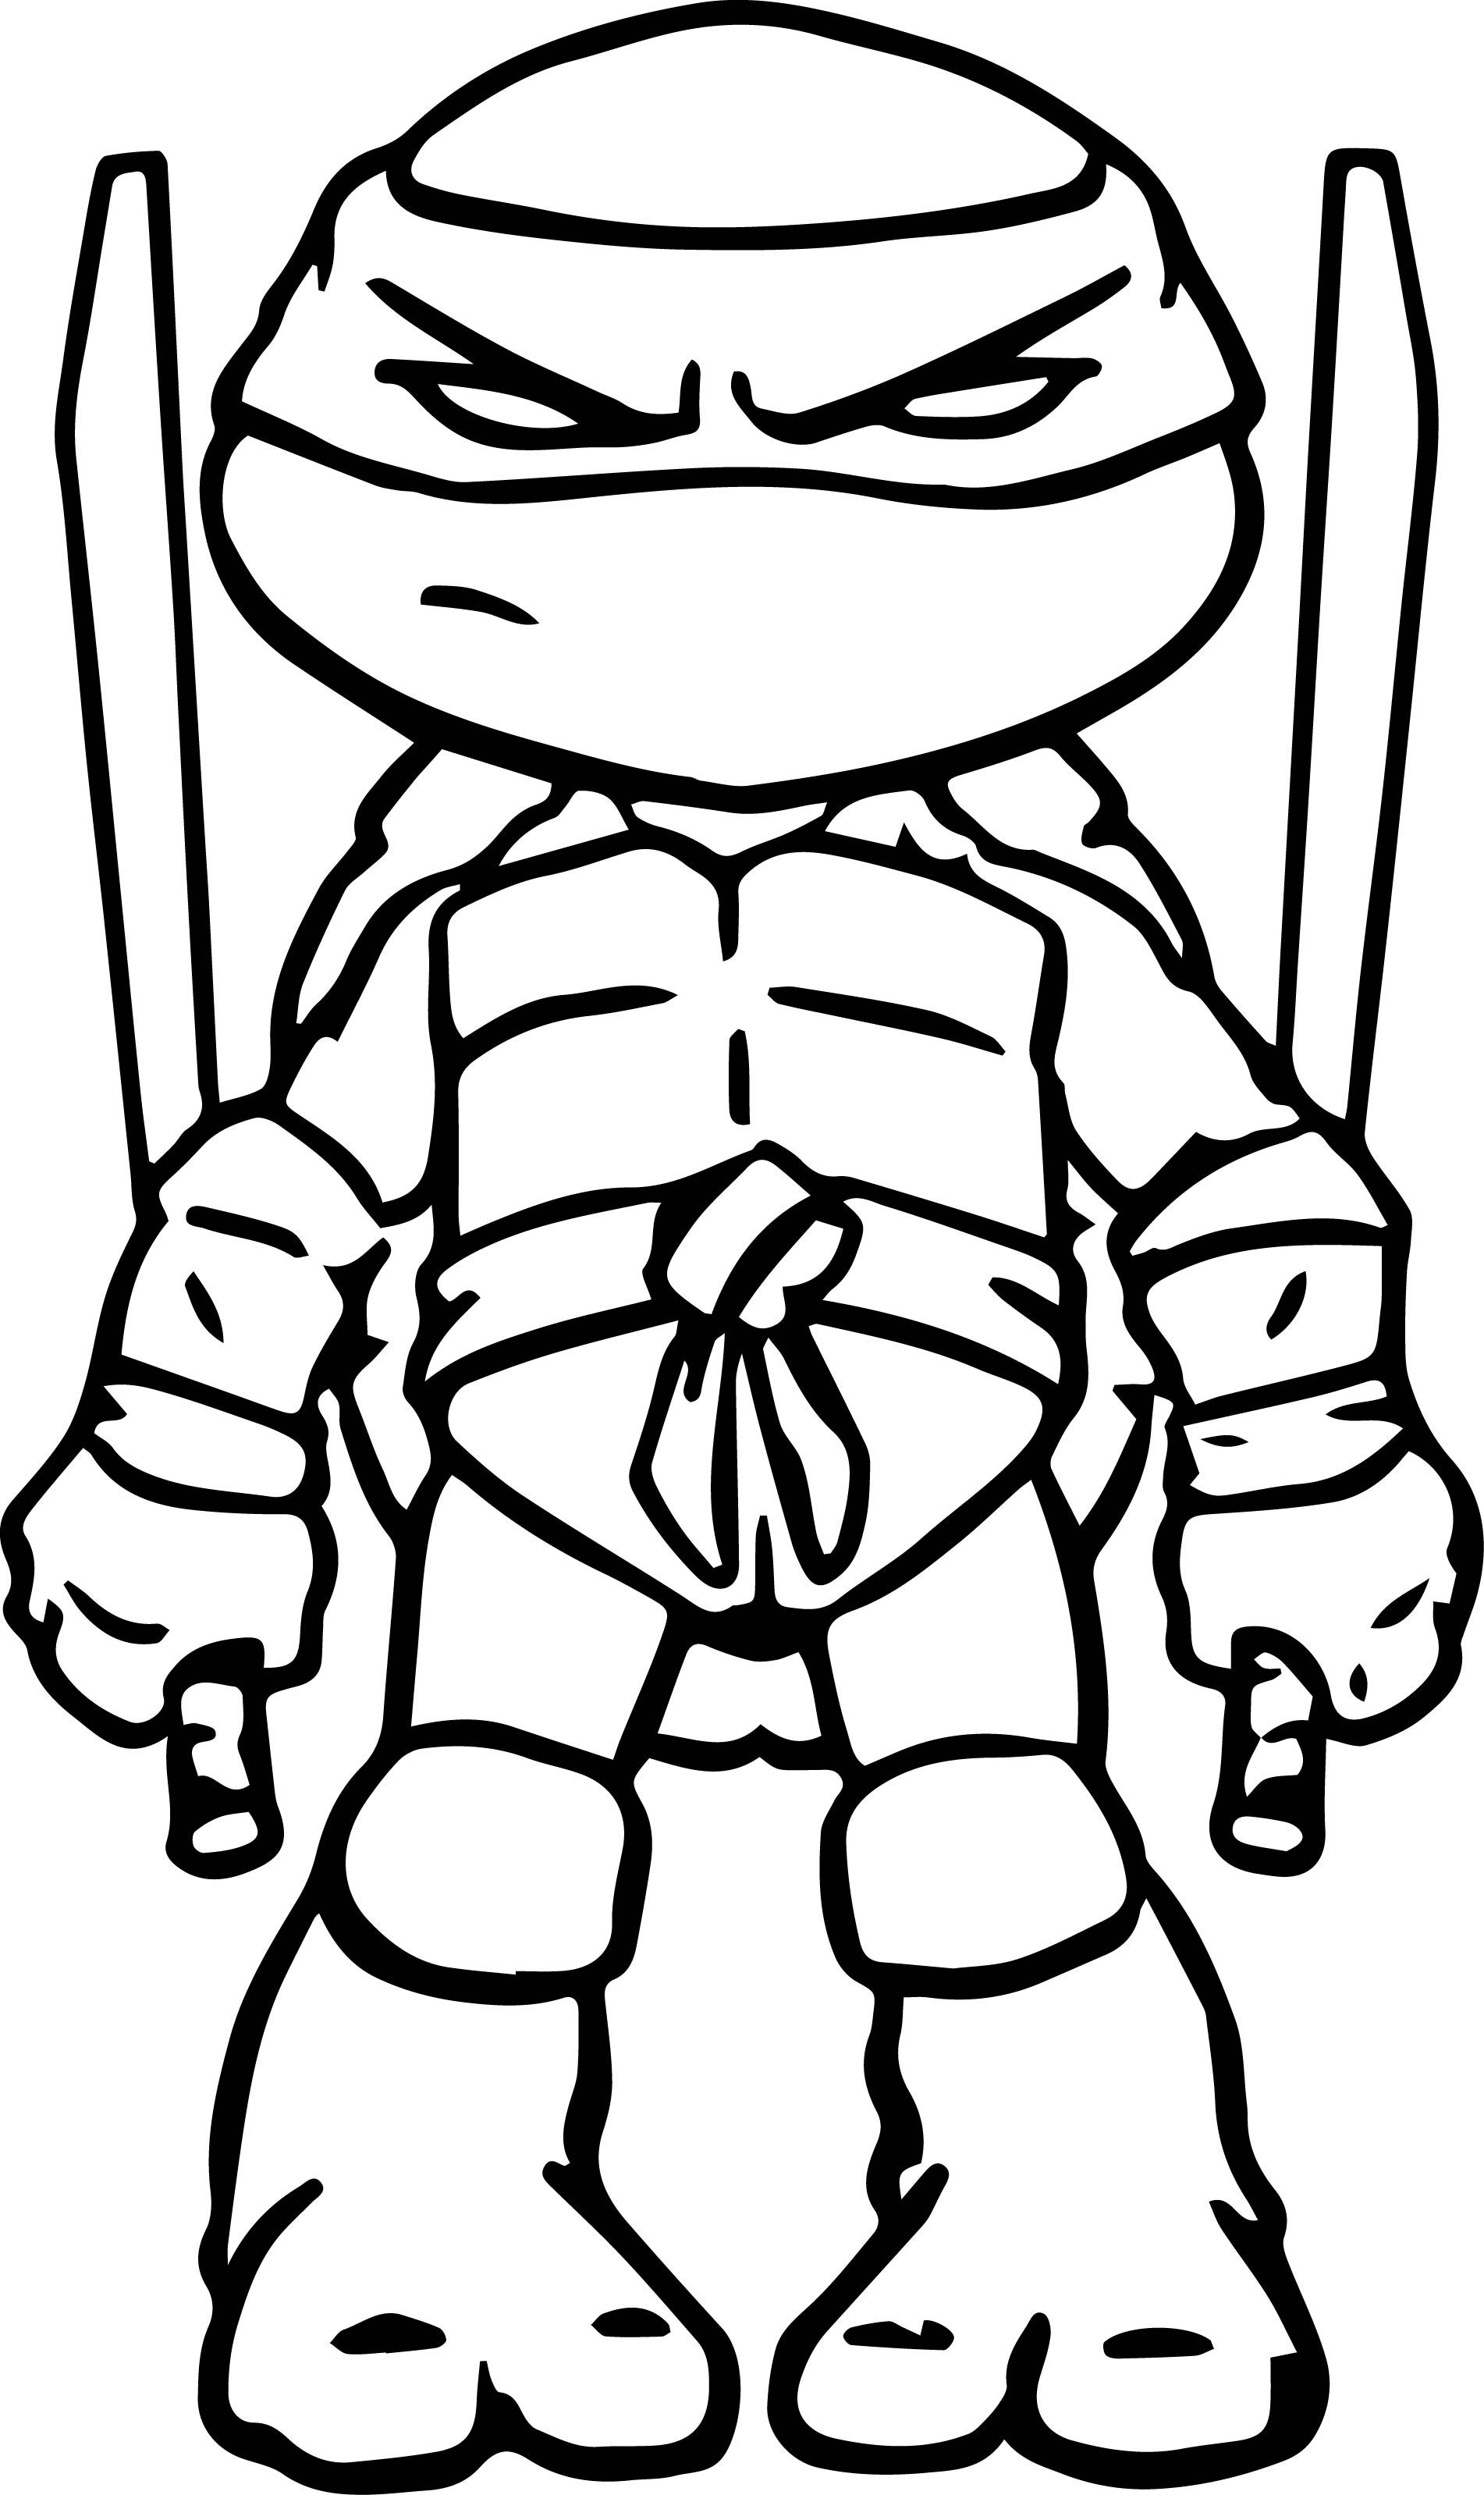 pictures of ninja turtles to color teenage mutant ninja turtles coloring pages ninja of pictures turtles to color